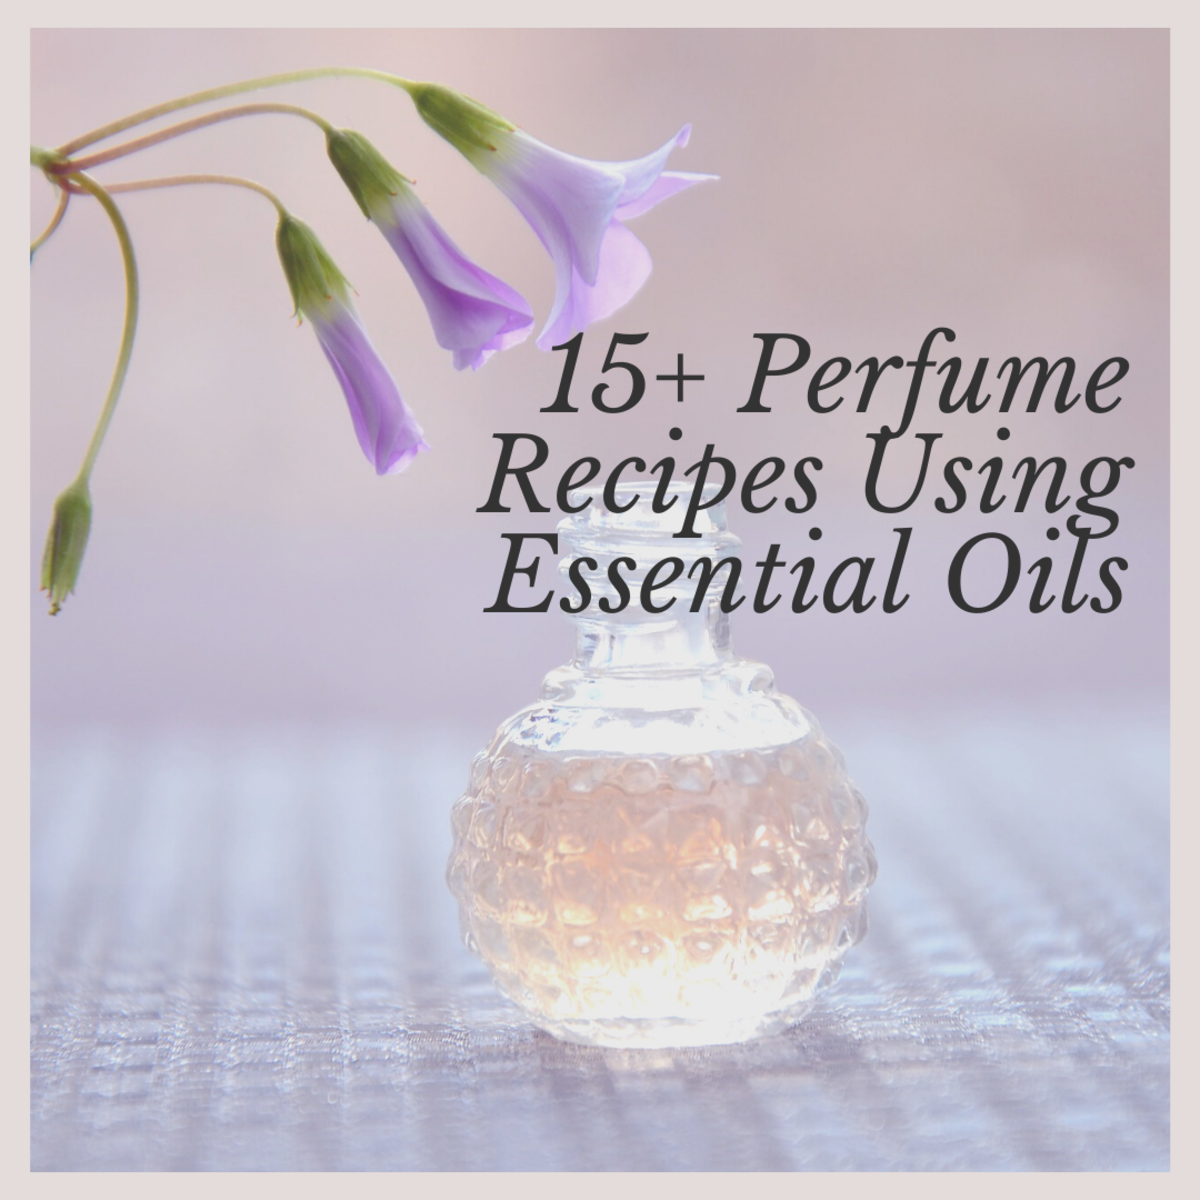 There are different types of recipes that you can make using different combinations of essential oil, depending on what kind of vibe you want to emit.